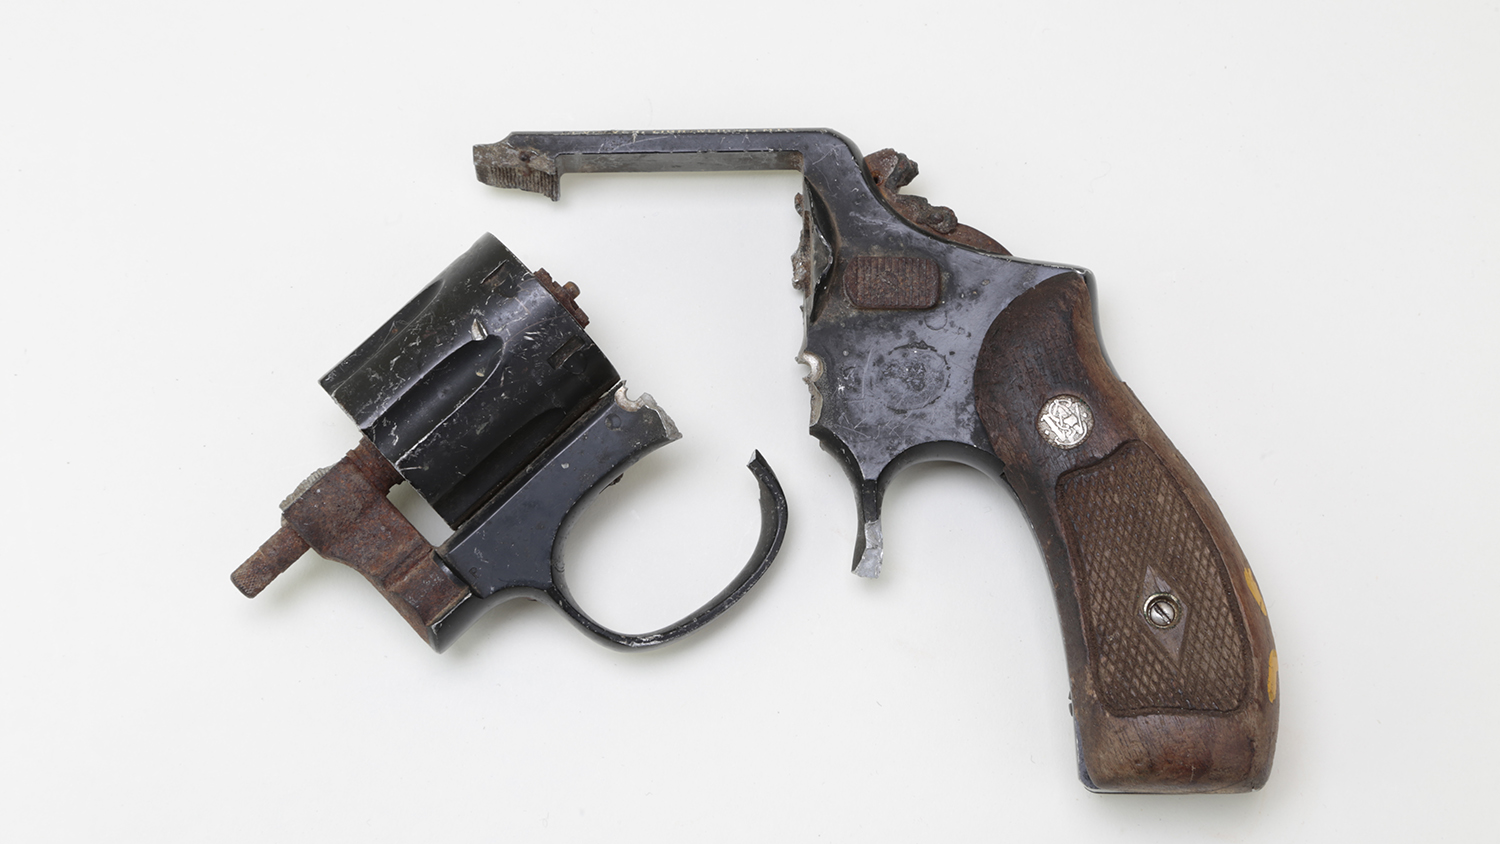 What Happened When The Air Force Tried Aluminum Revolvers?